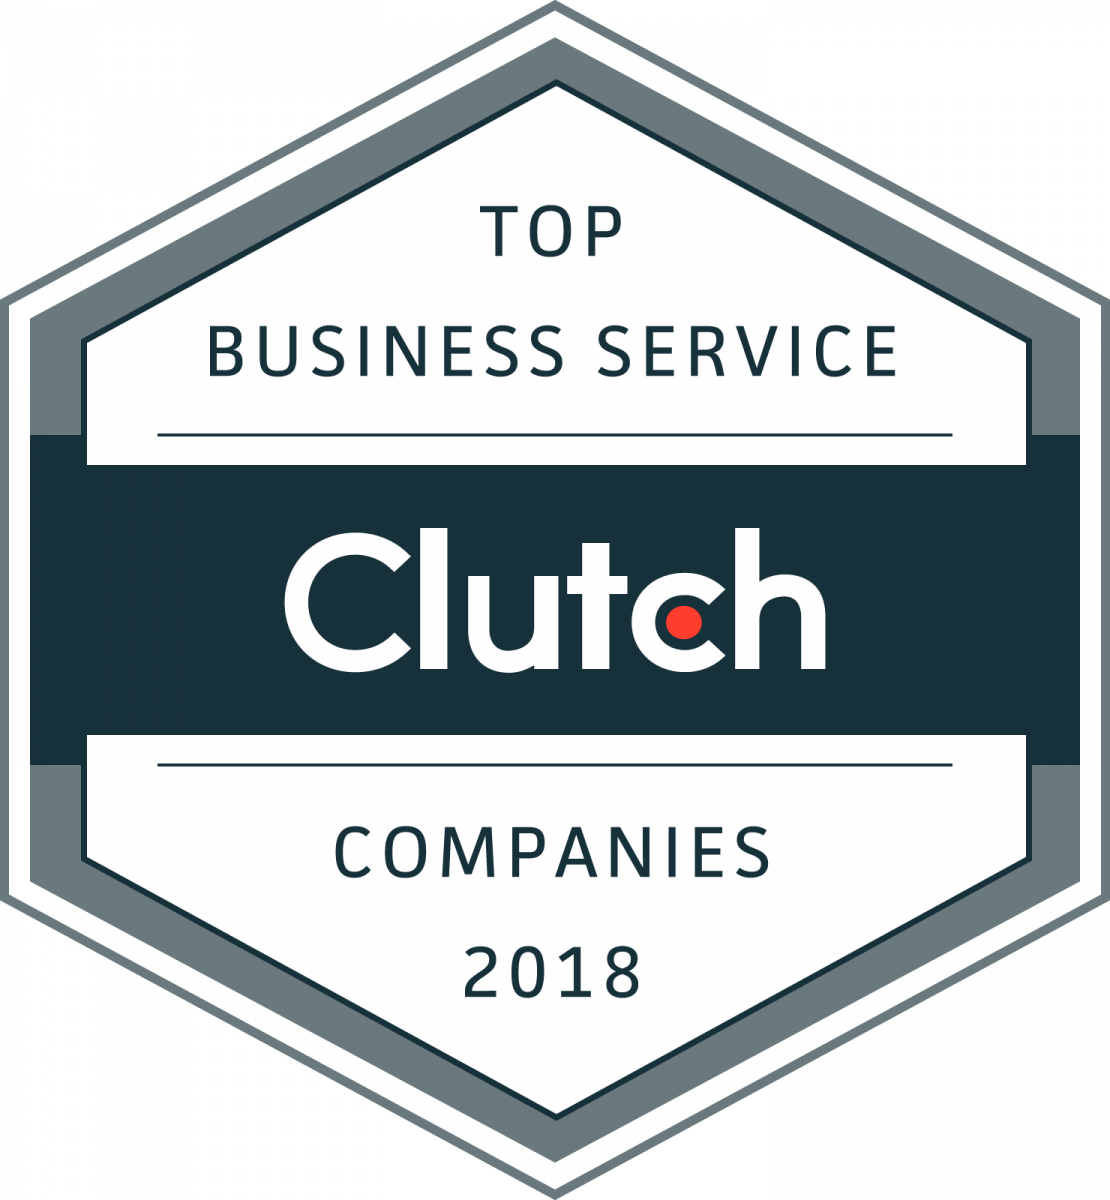 top business services companies in 2018